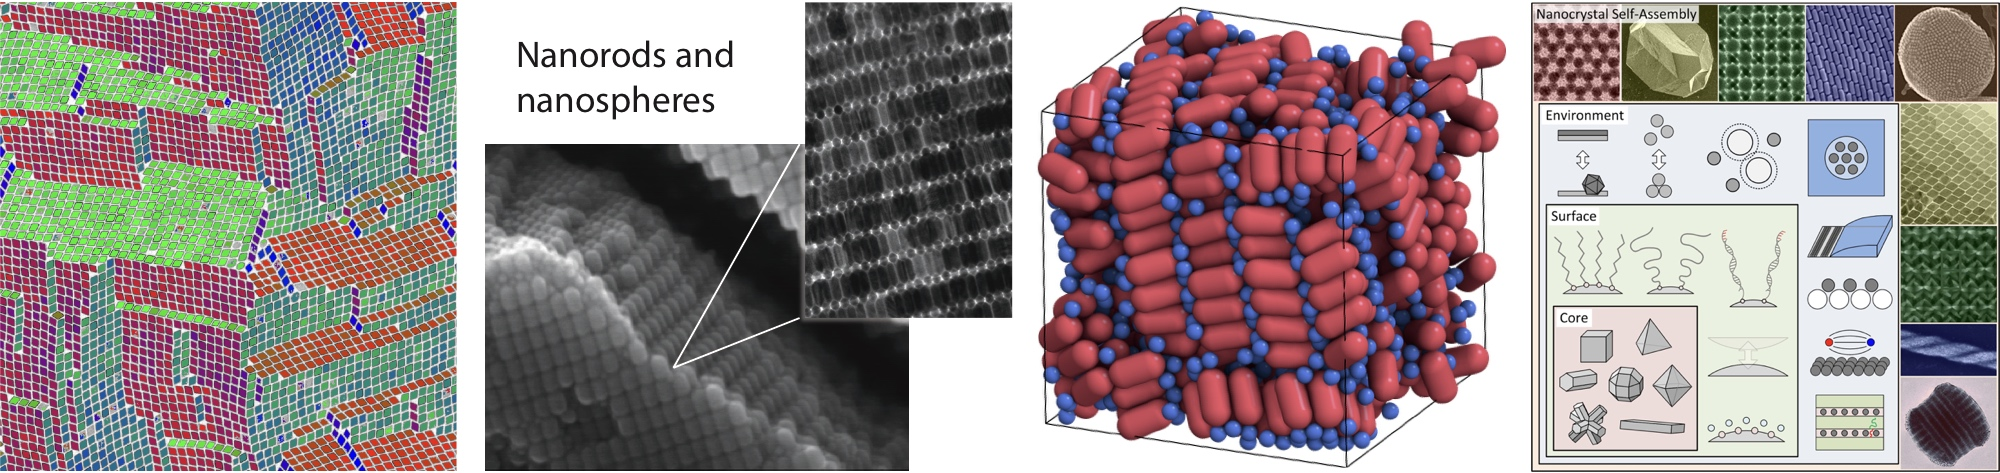 Nanoparticle Self-Assembly